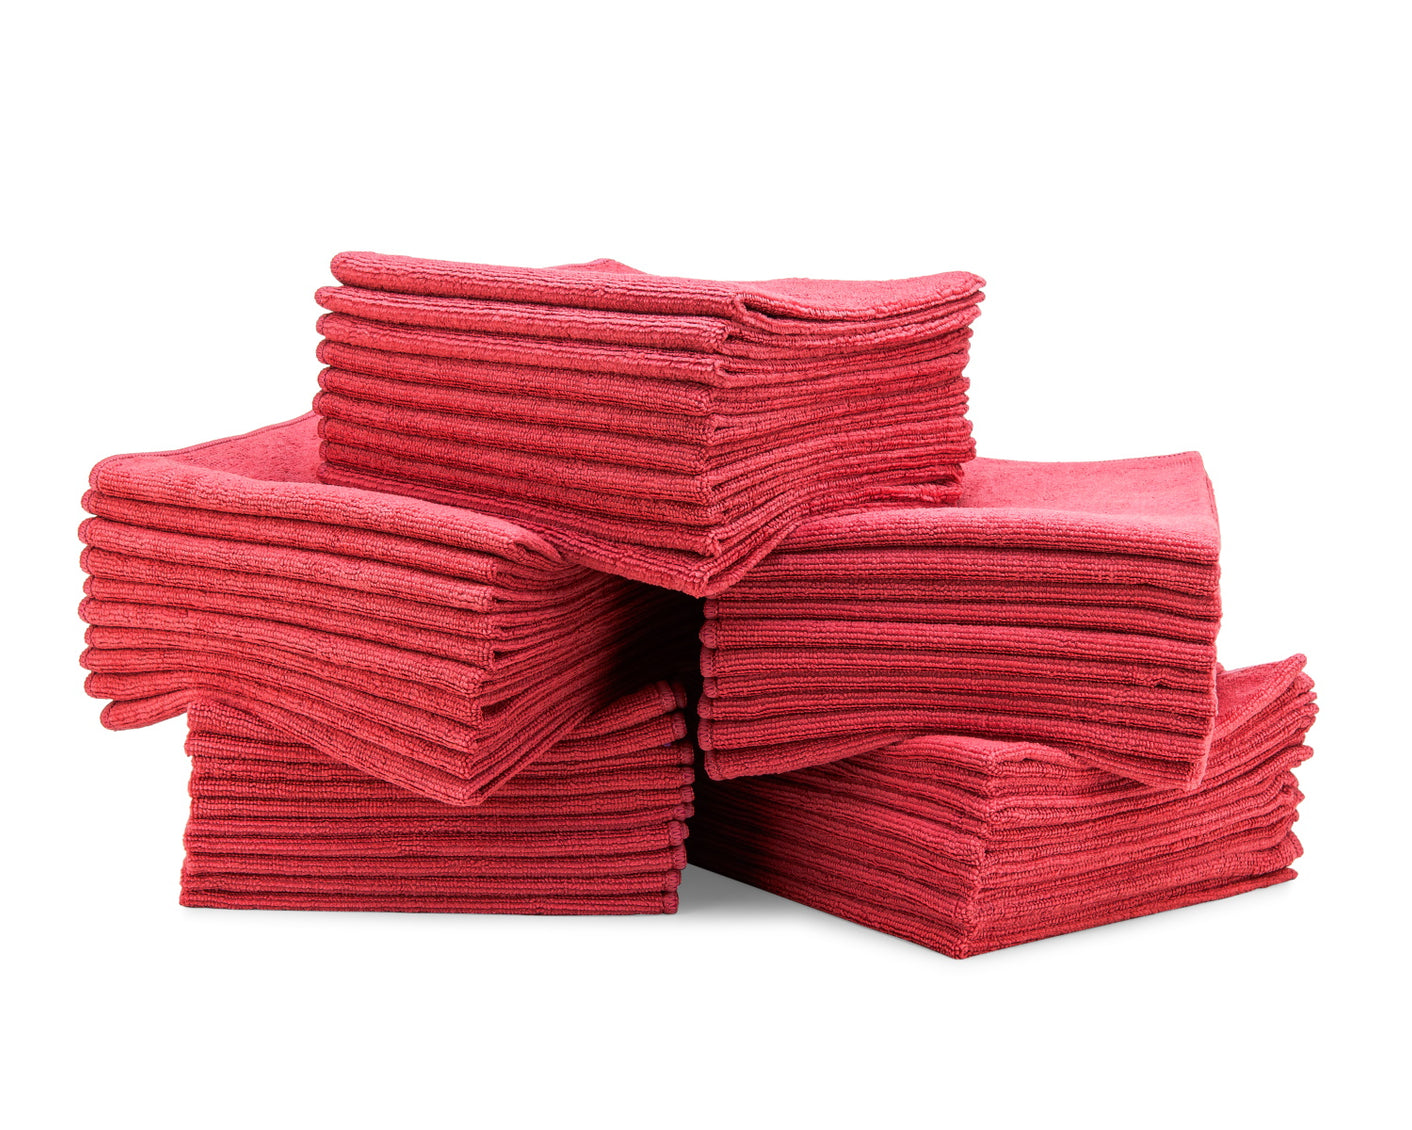 16 x 16 Microfiber Towels Bulk 50 Pack Red